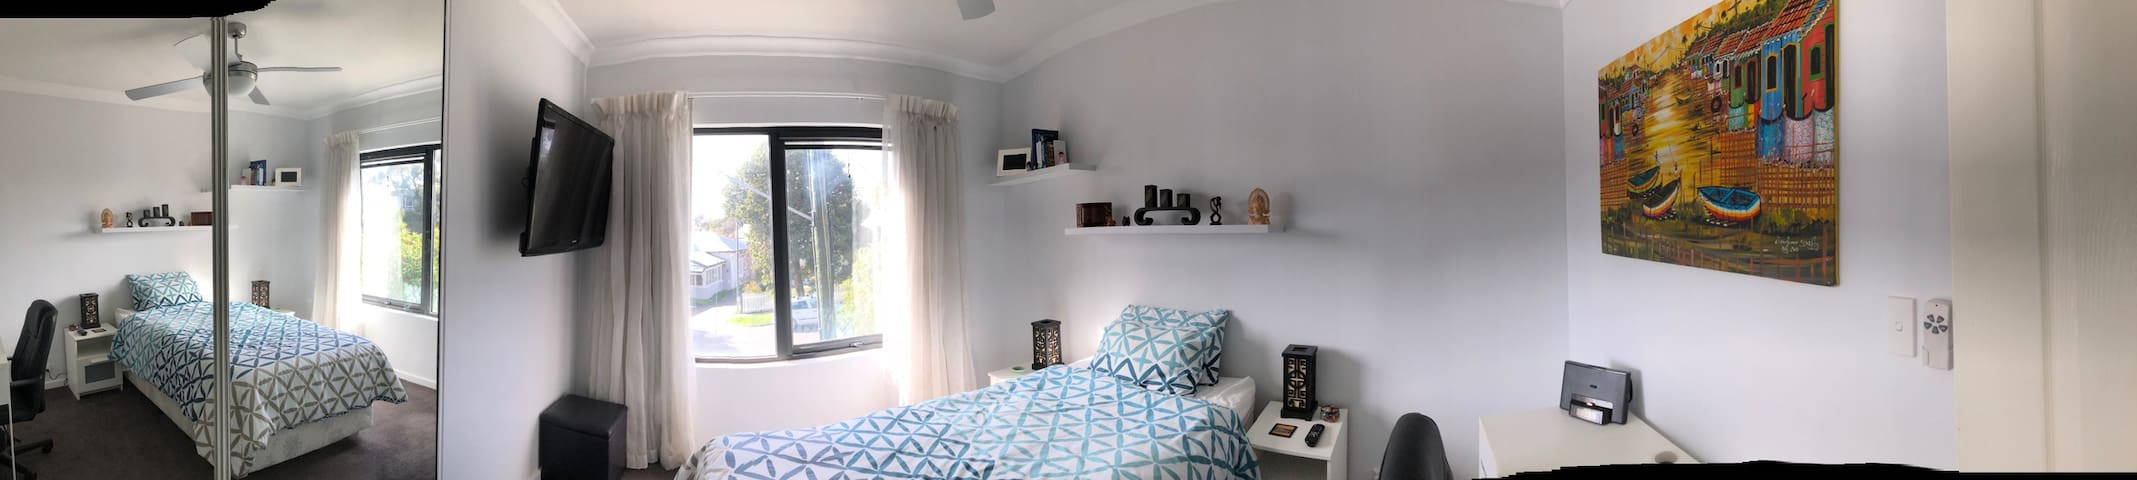 Private room in Mount Hawthorn, 4km from the CBD .